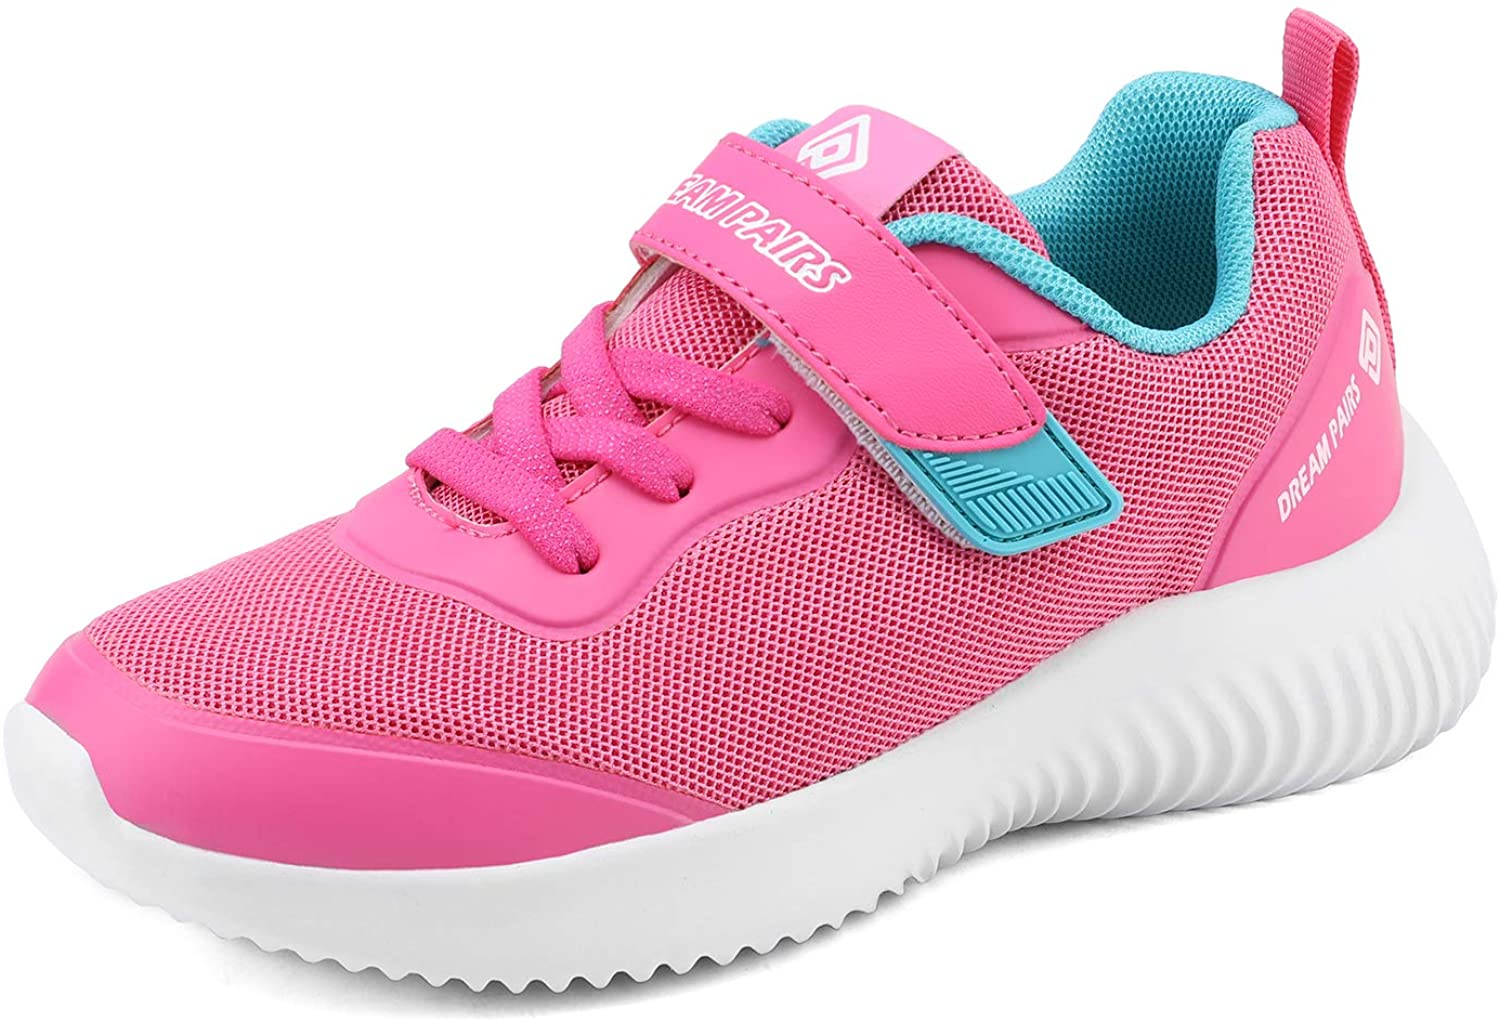 Sale special price DREAM PAIRS Boys Girls Limited time for free shipping Tennis Sports Athletic Running Snea Shoes